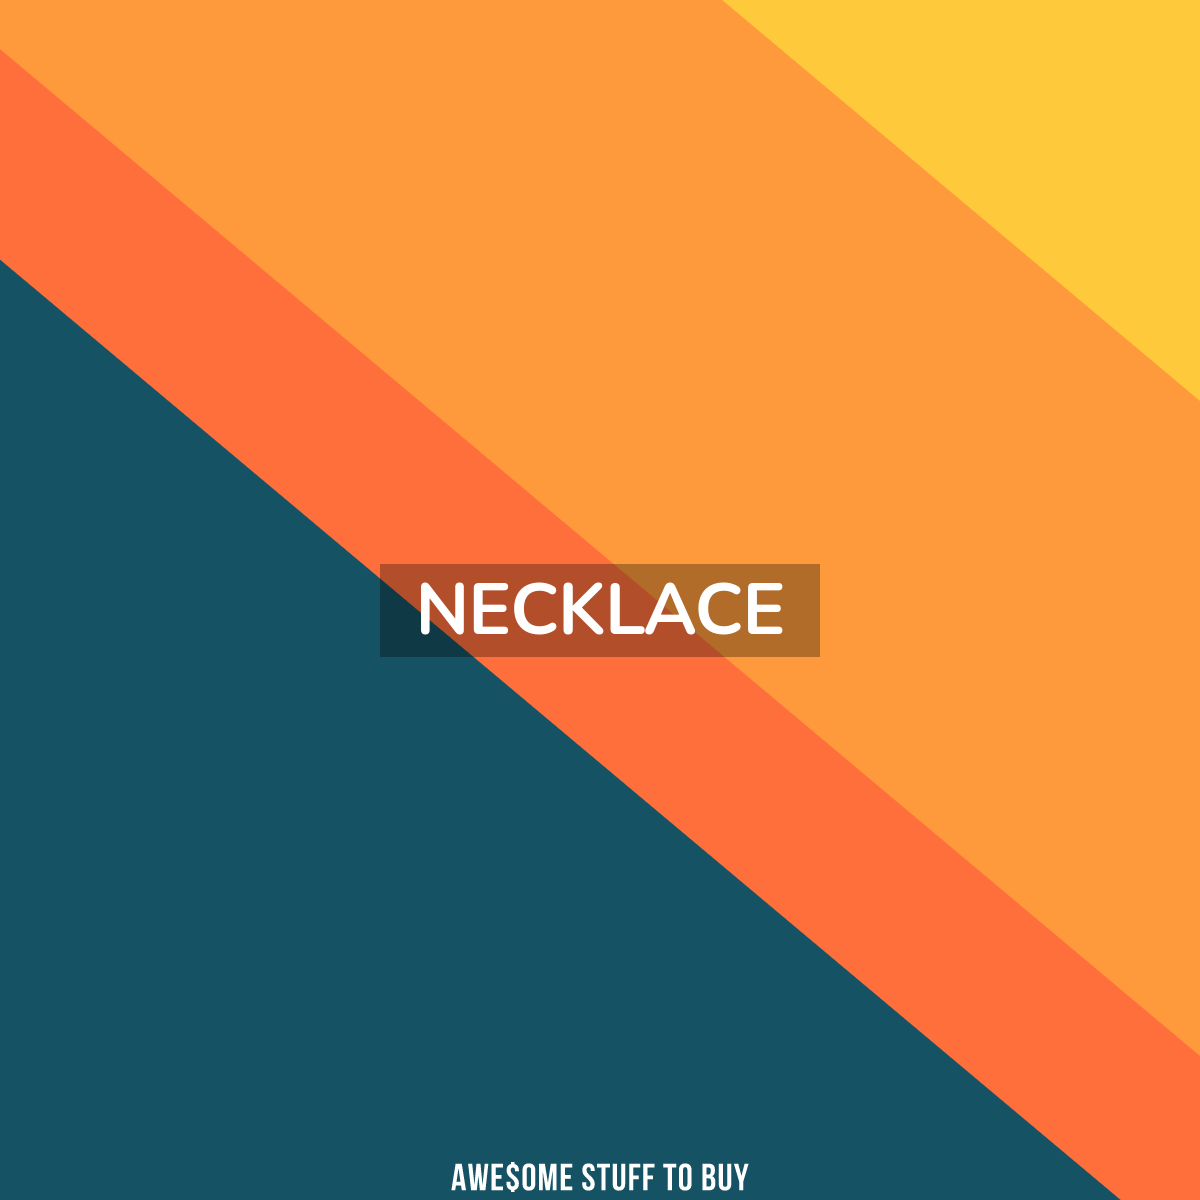 necklace // Awesome Stuff to Buy